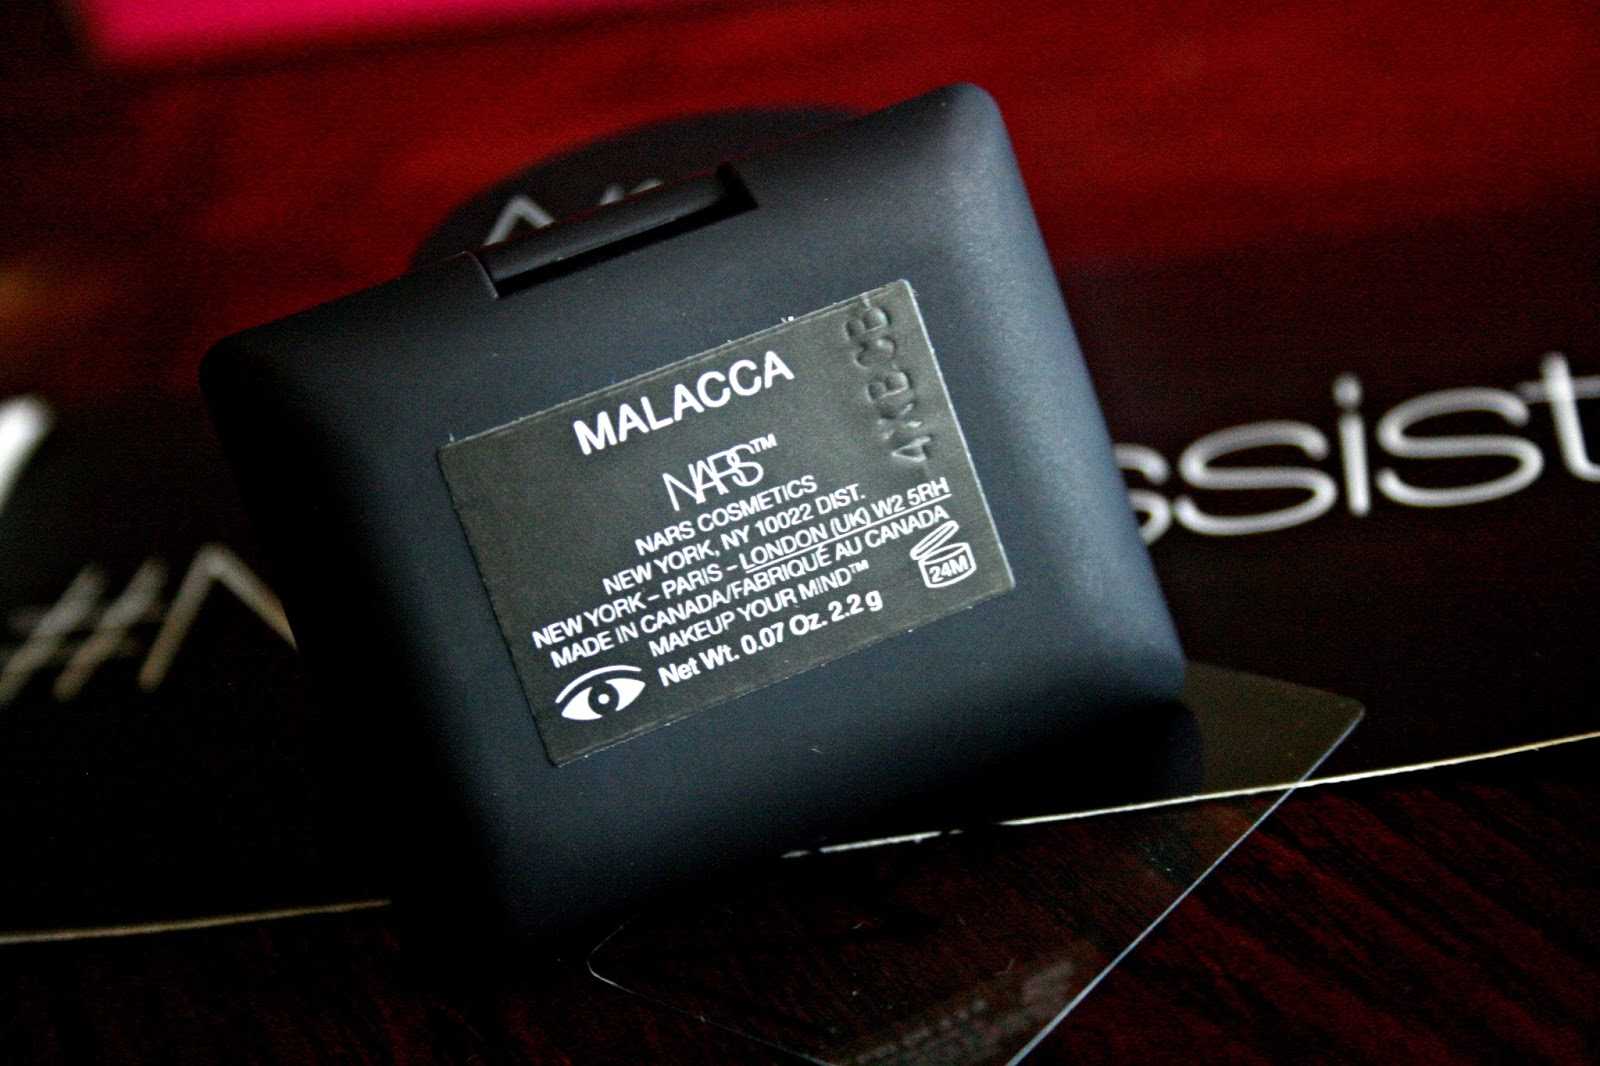 NARS Malacca Shimmer Eye Shadow NARS Adult Swim Summer 2014 Collection Review, Photos, Swatches, EOTD